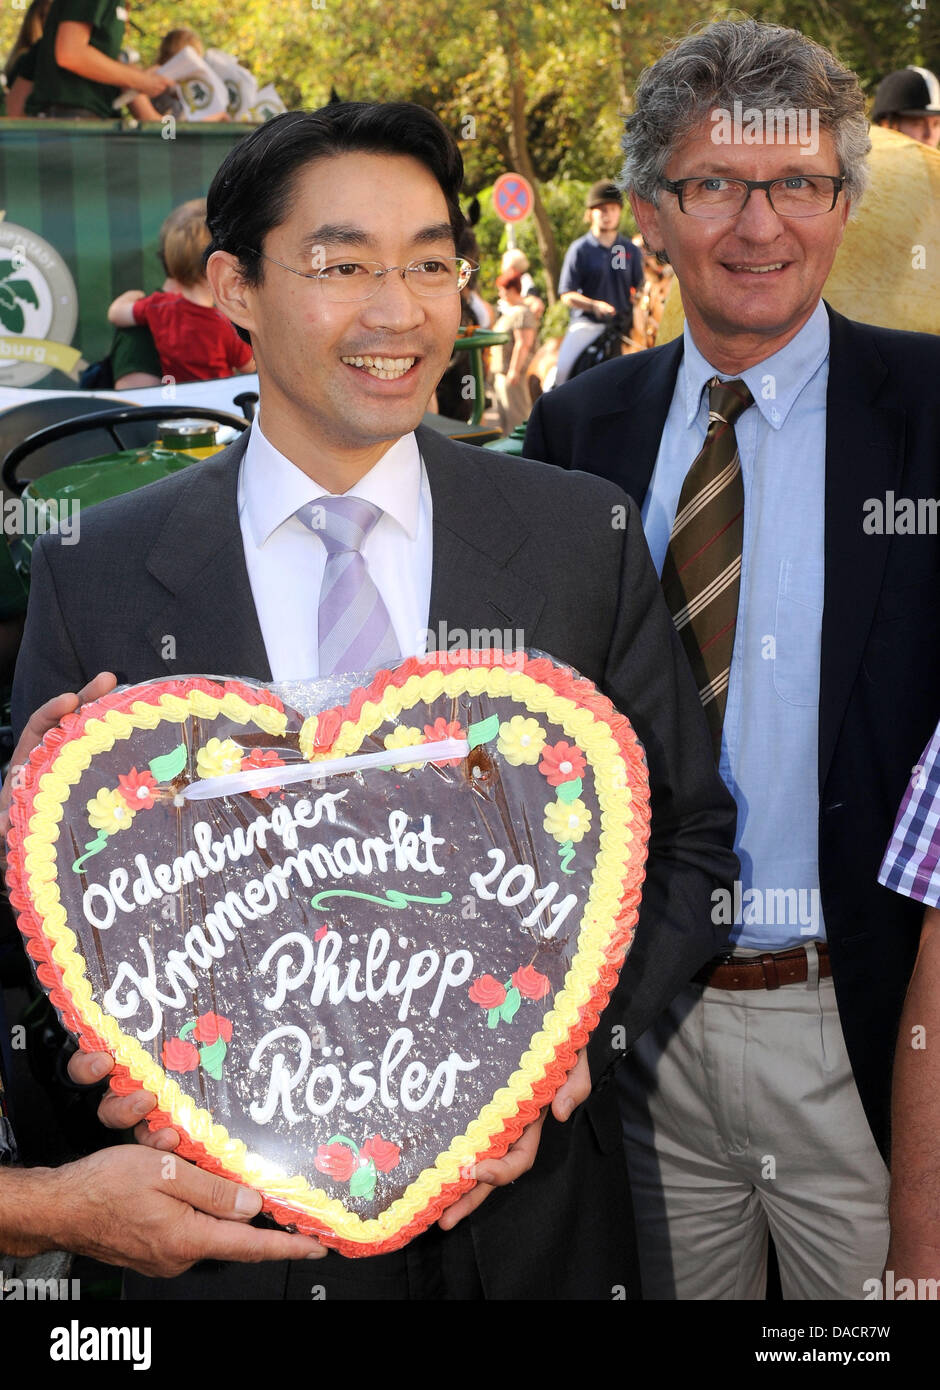 Holding a gingerbread in his hands Economy Minister Philipp Roesler (L) and Oldenburg's mayor Gerd Schwandner - Stock Image